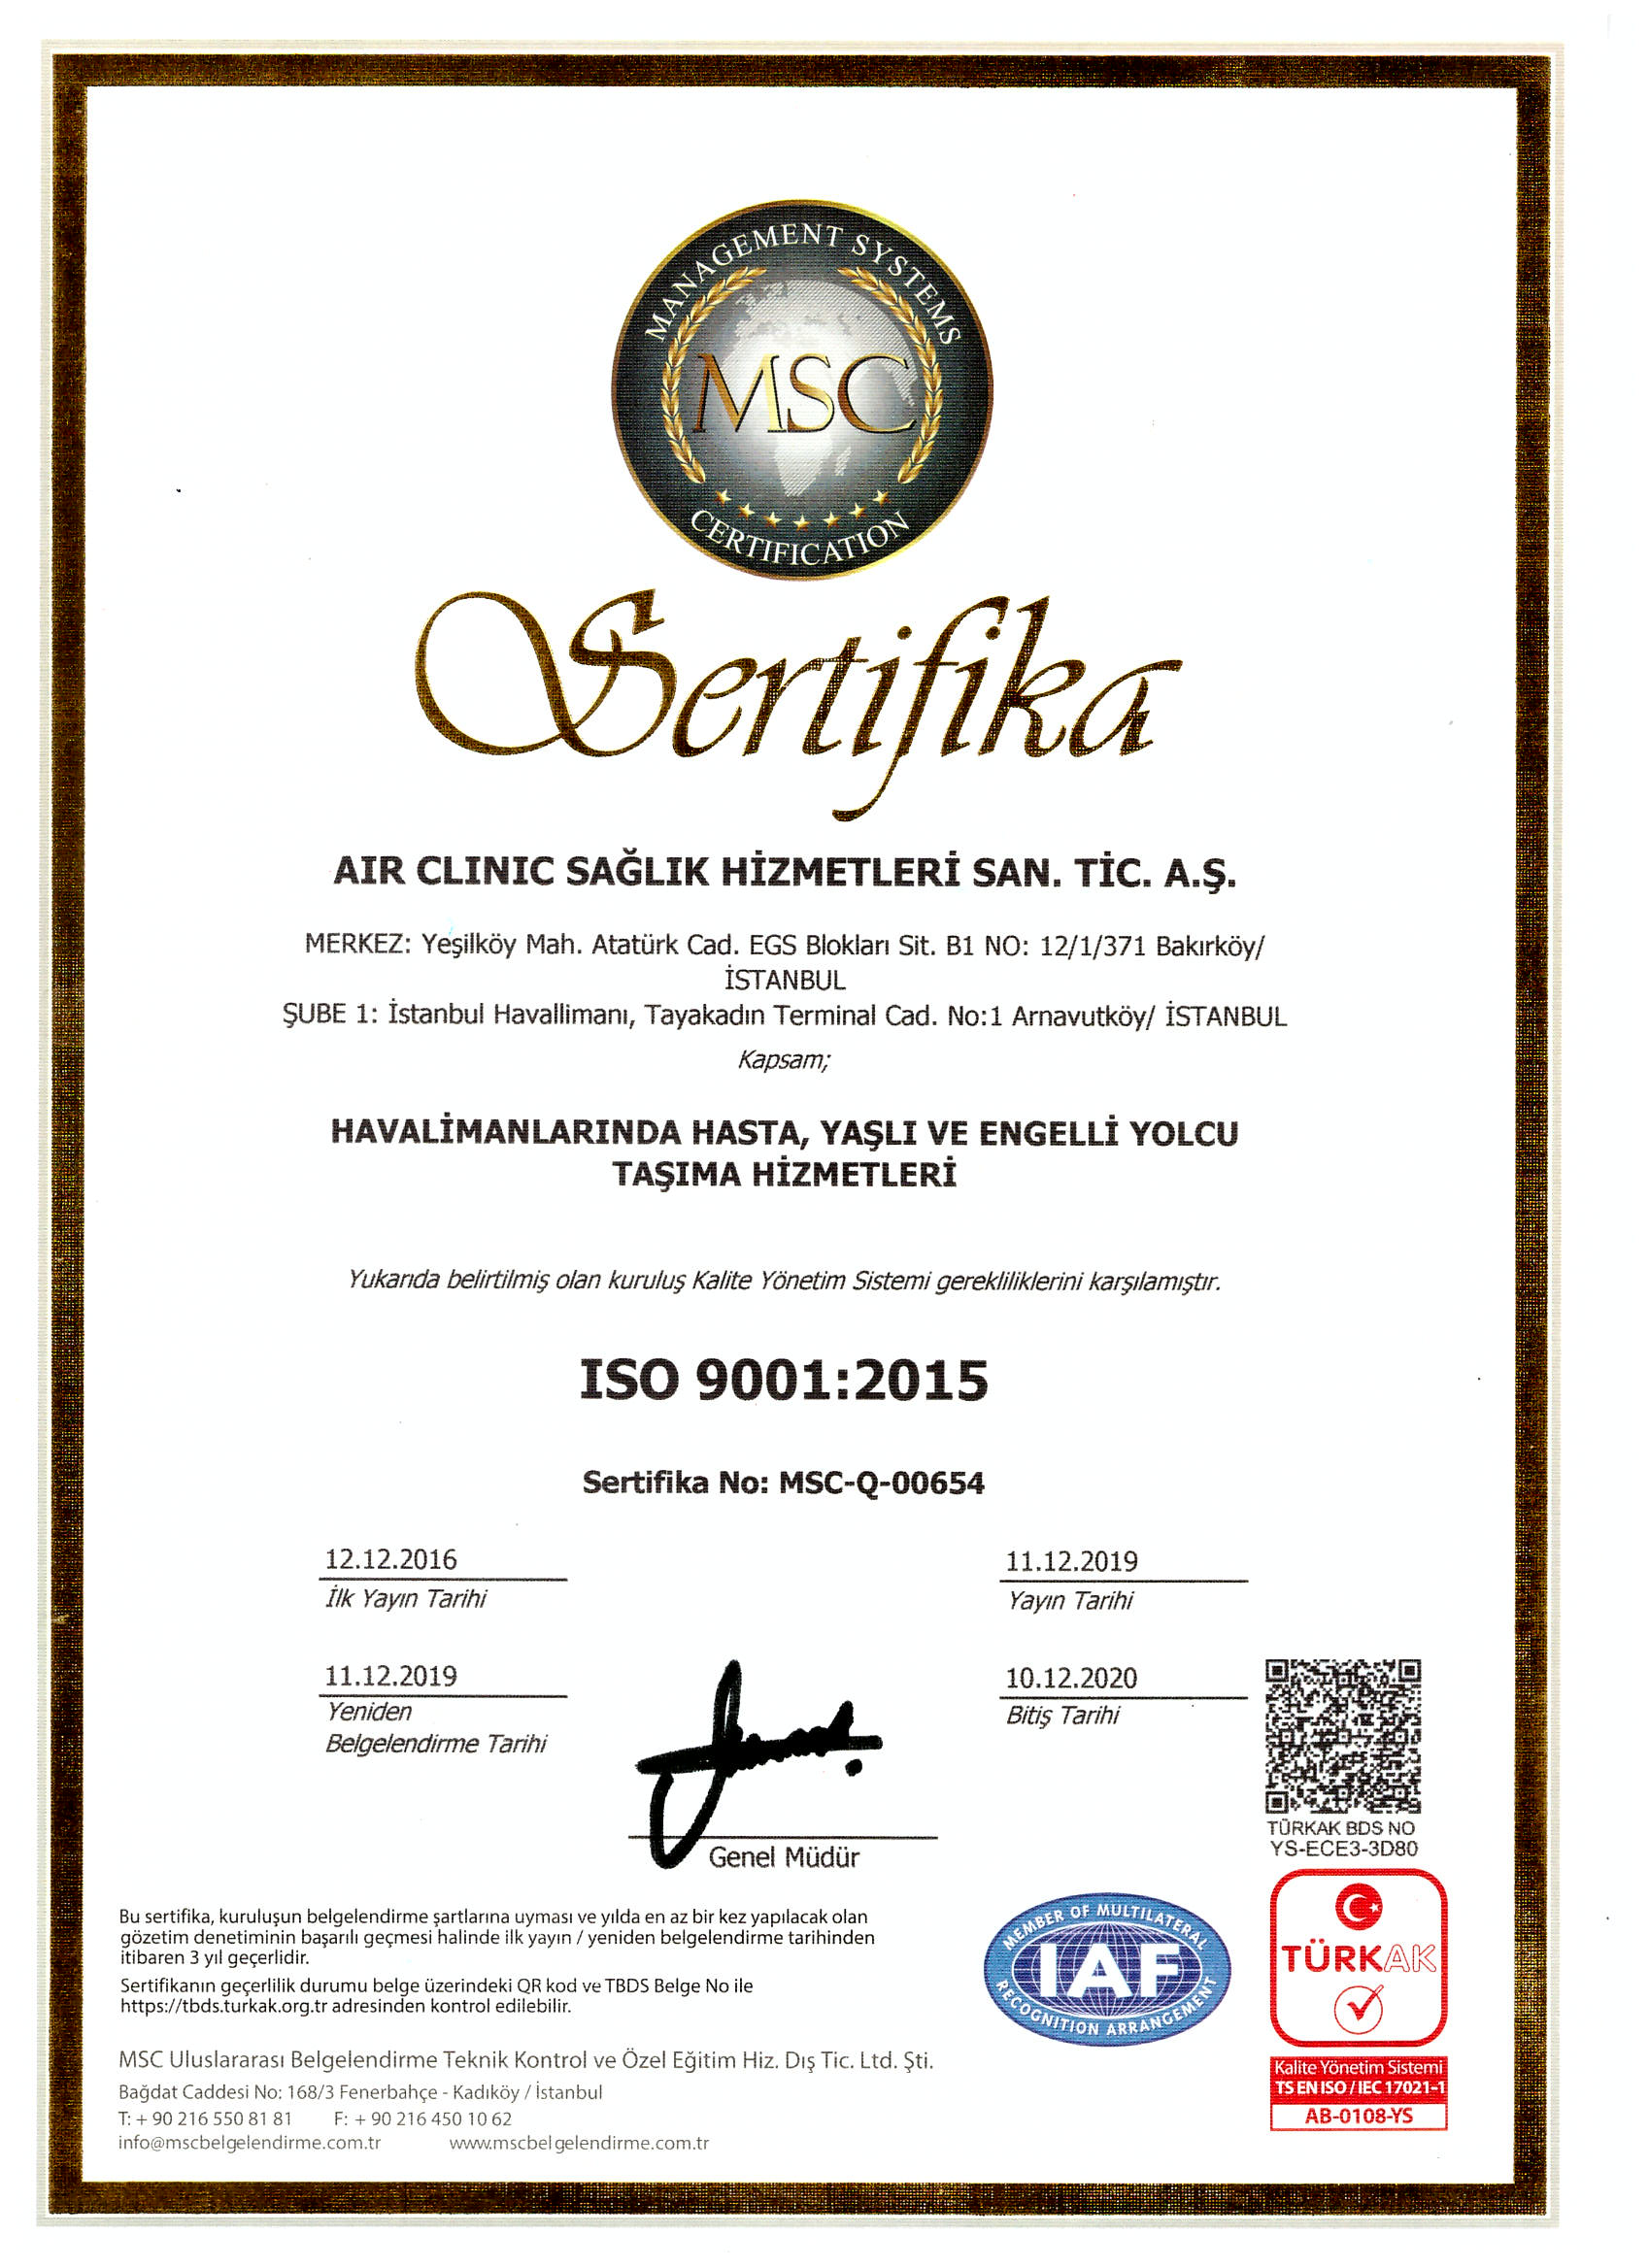 air-clinic-iso-90012015 Certificates